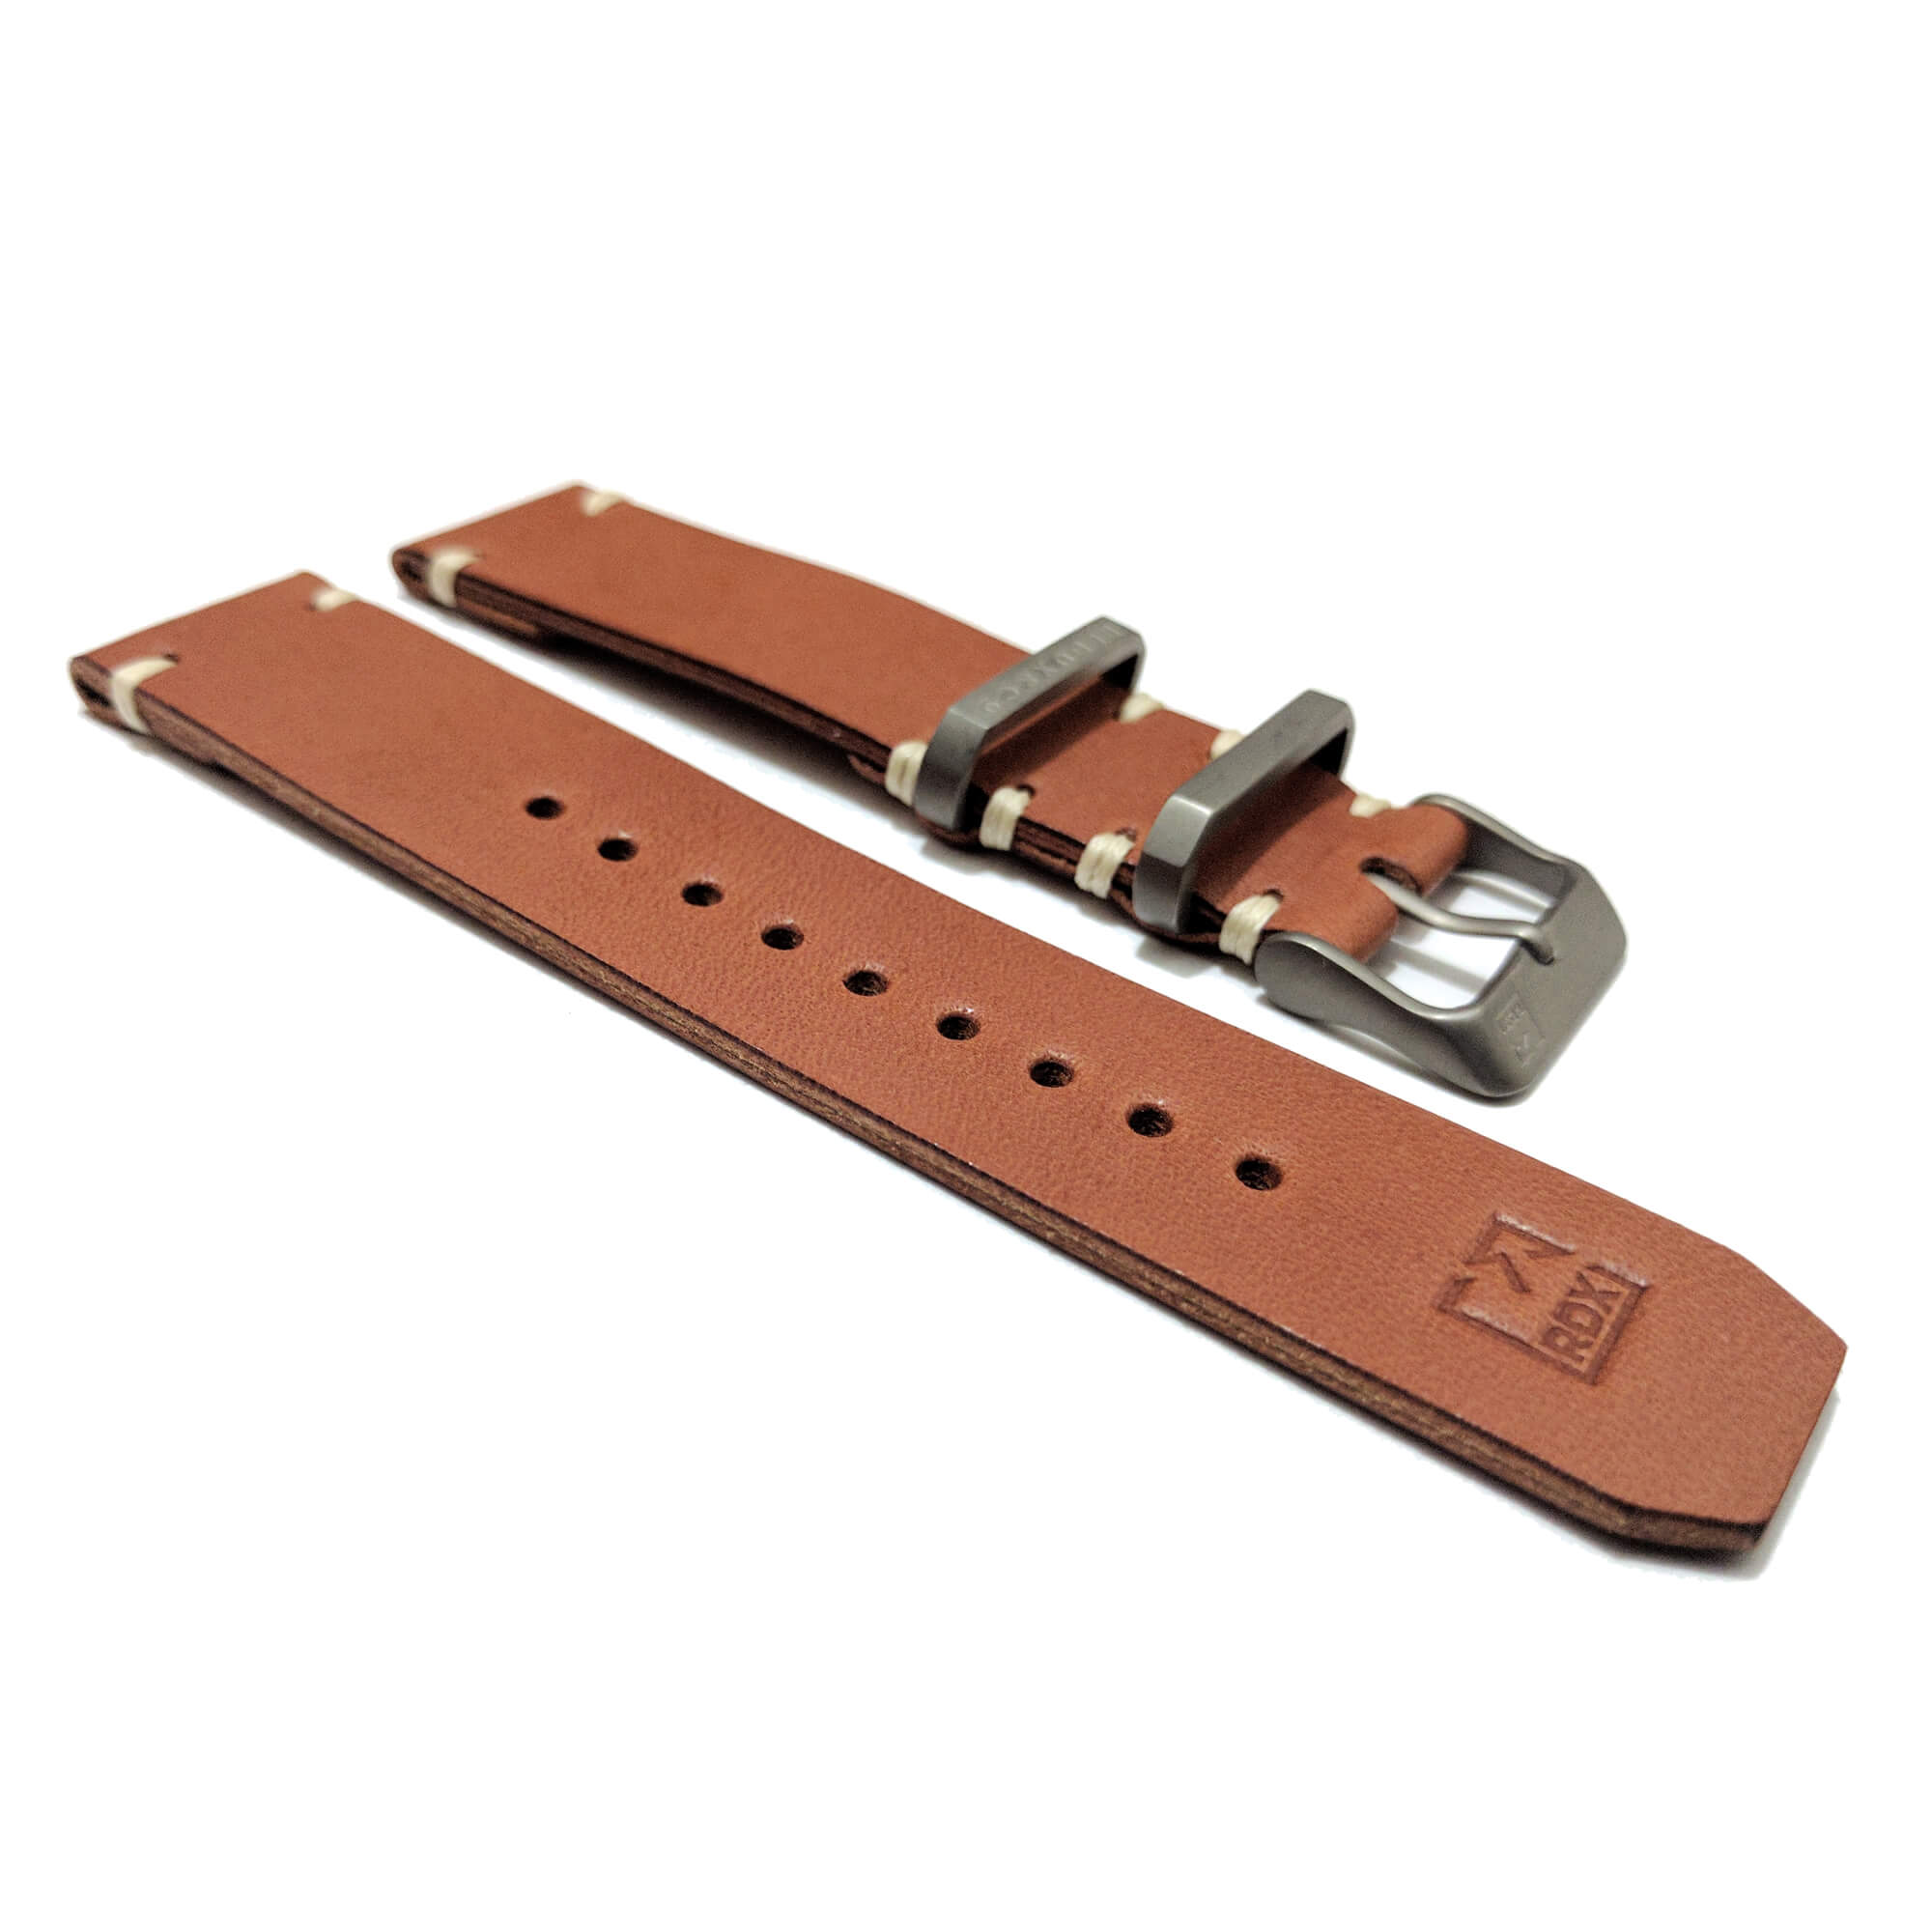 Redux Brooklyn Handcrafted Leather 2 piece strap with Titanium hardware